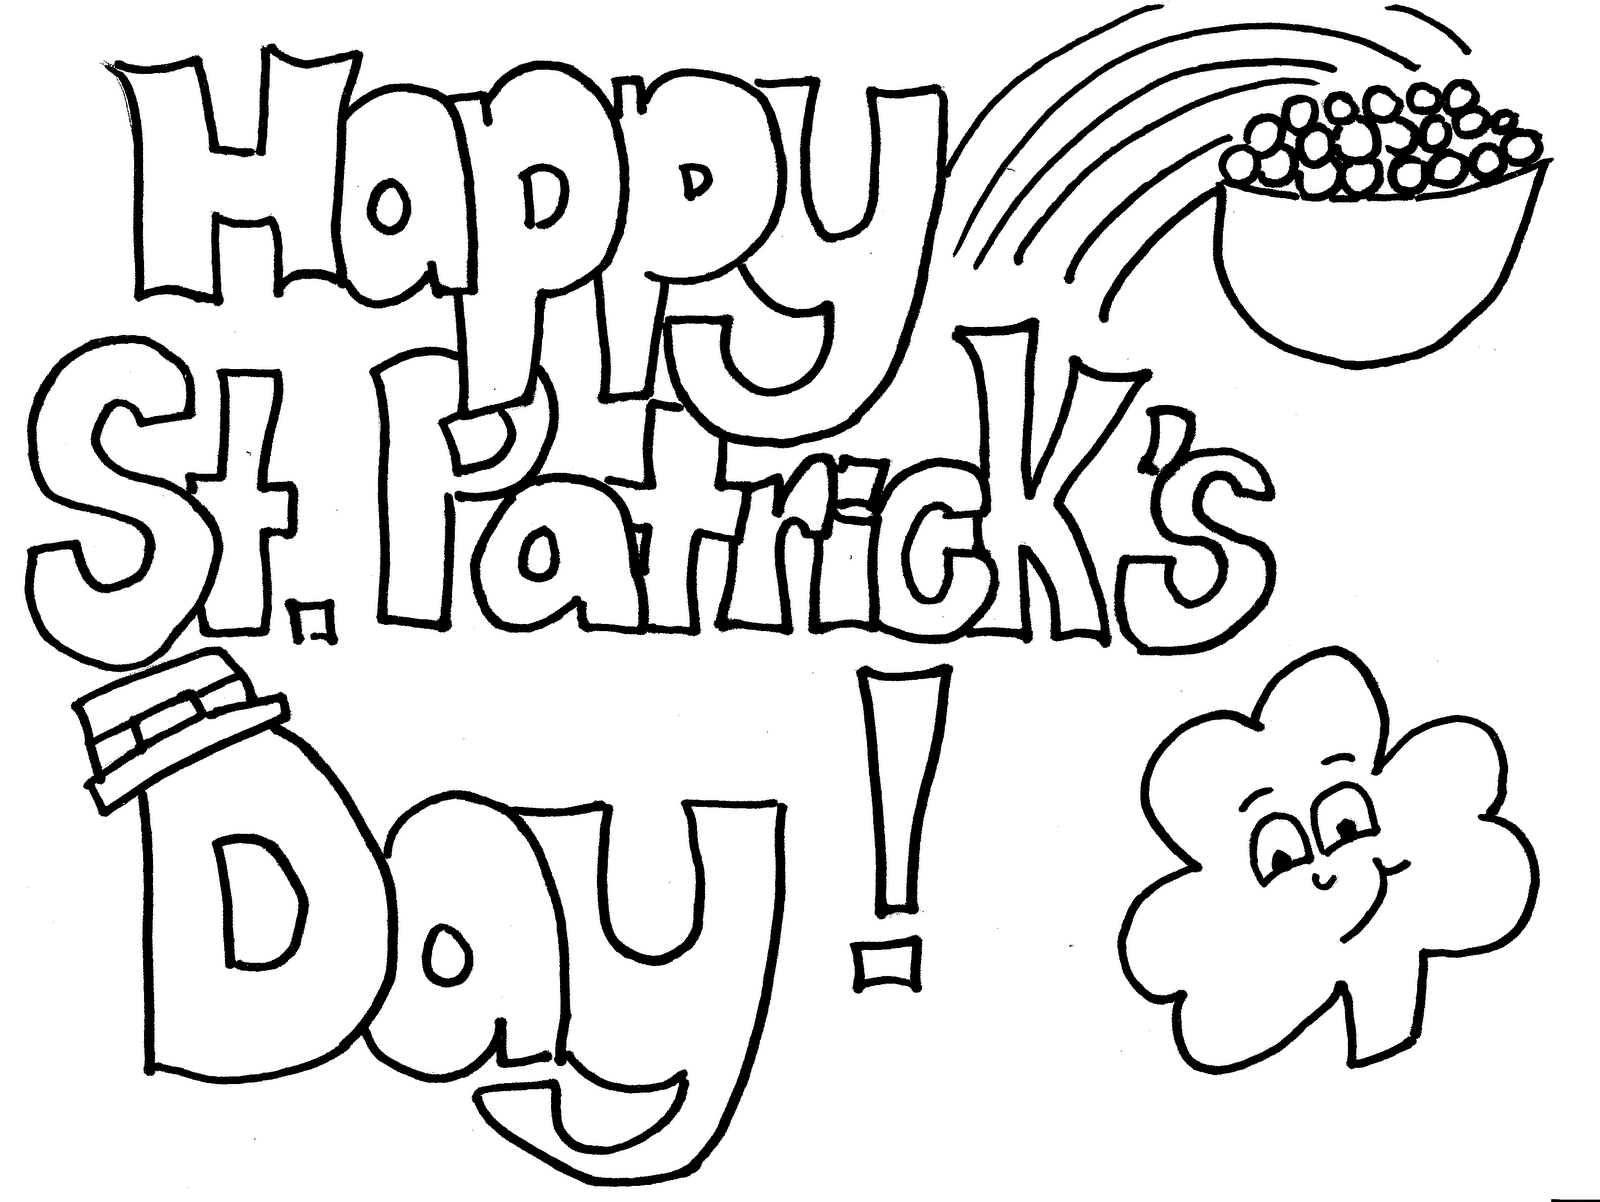 Merveilleux Happy St Patricku0027s Day Coloring Sheets Printable For Kids